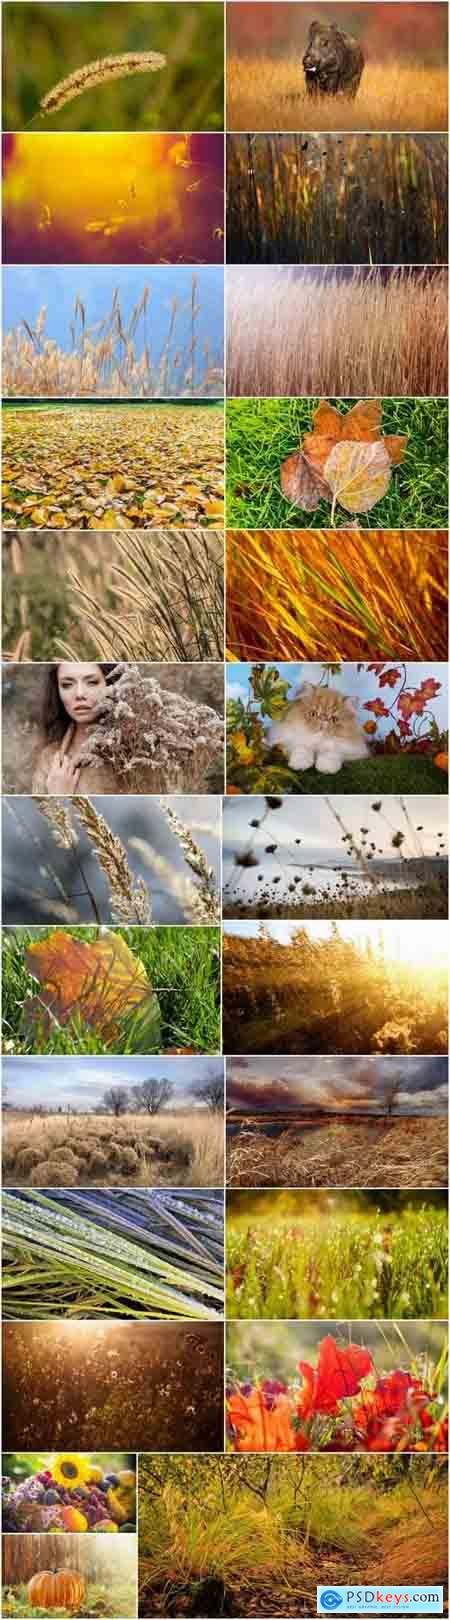 Autumn grass field landscape ear of yellow leaf 25 HQ Jpeg